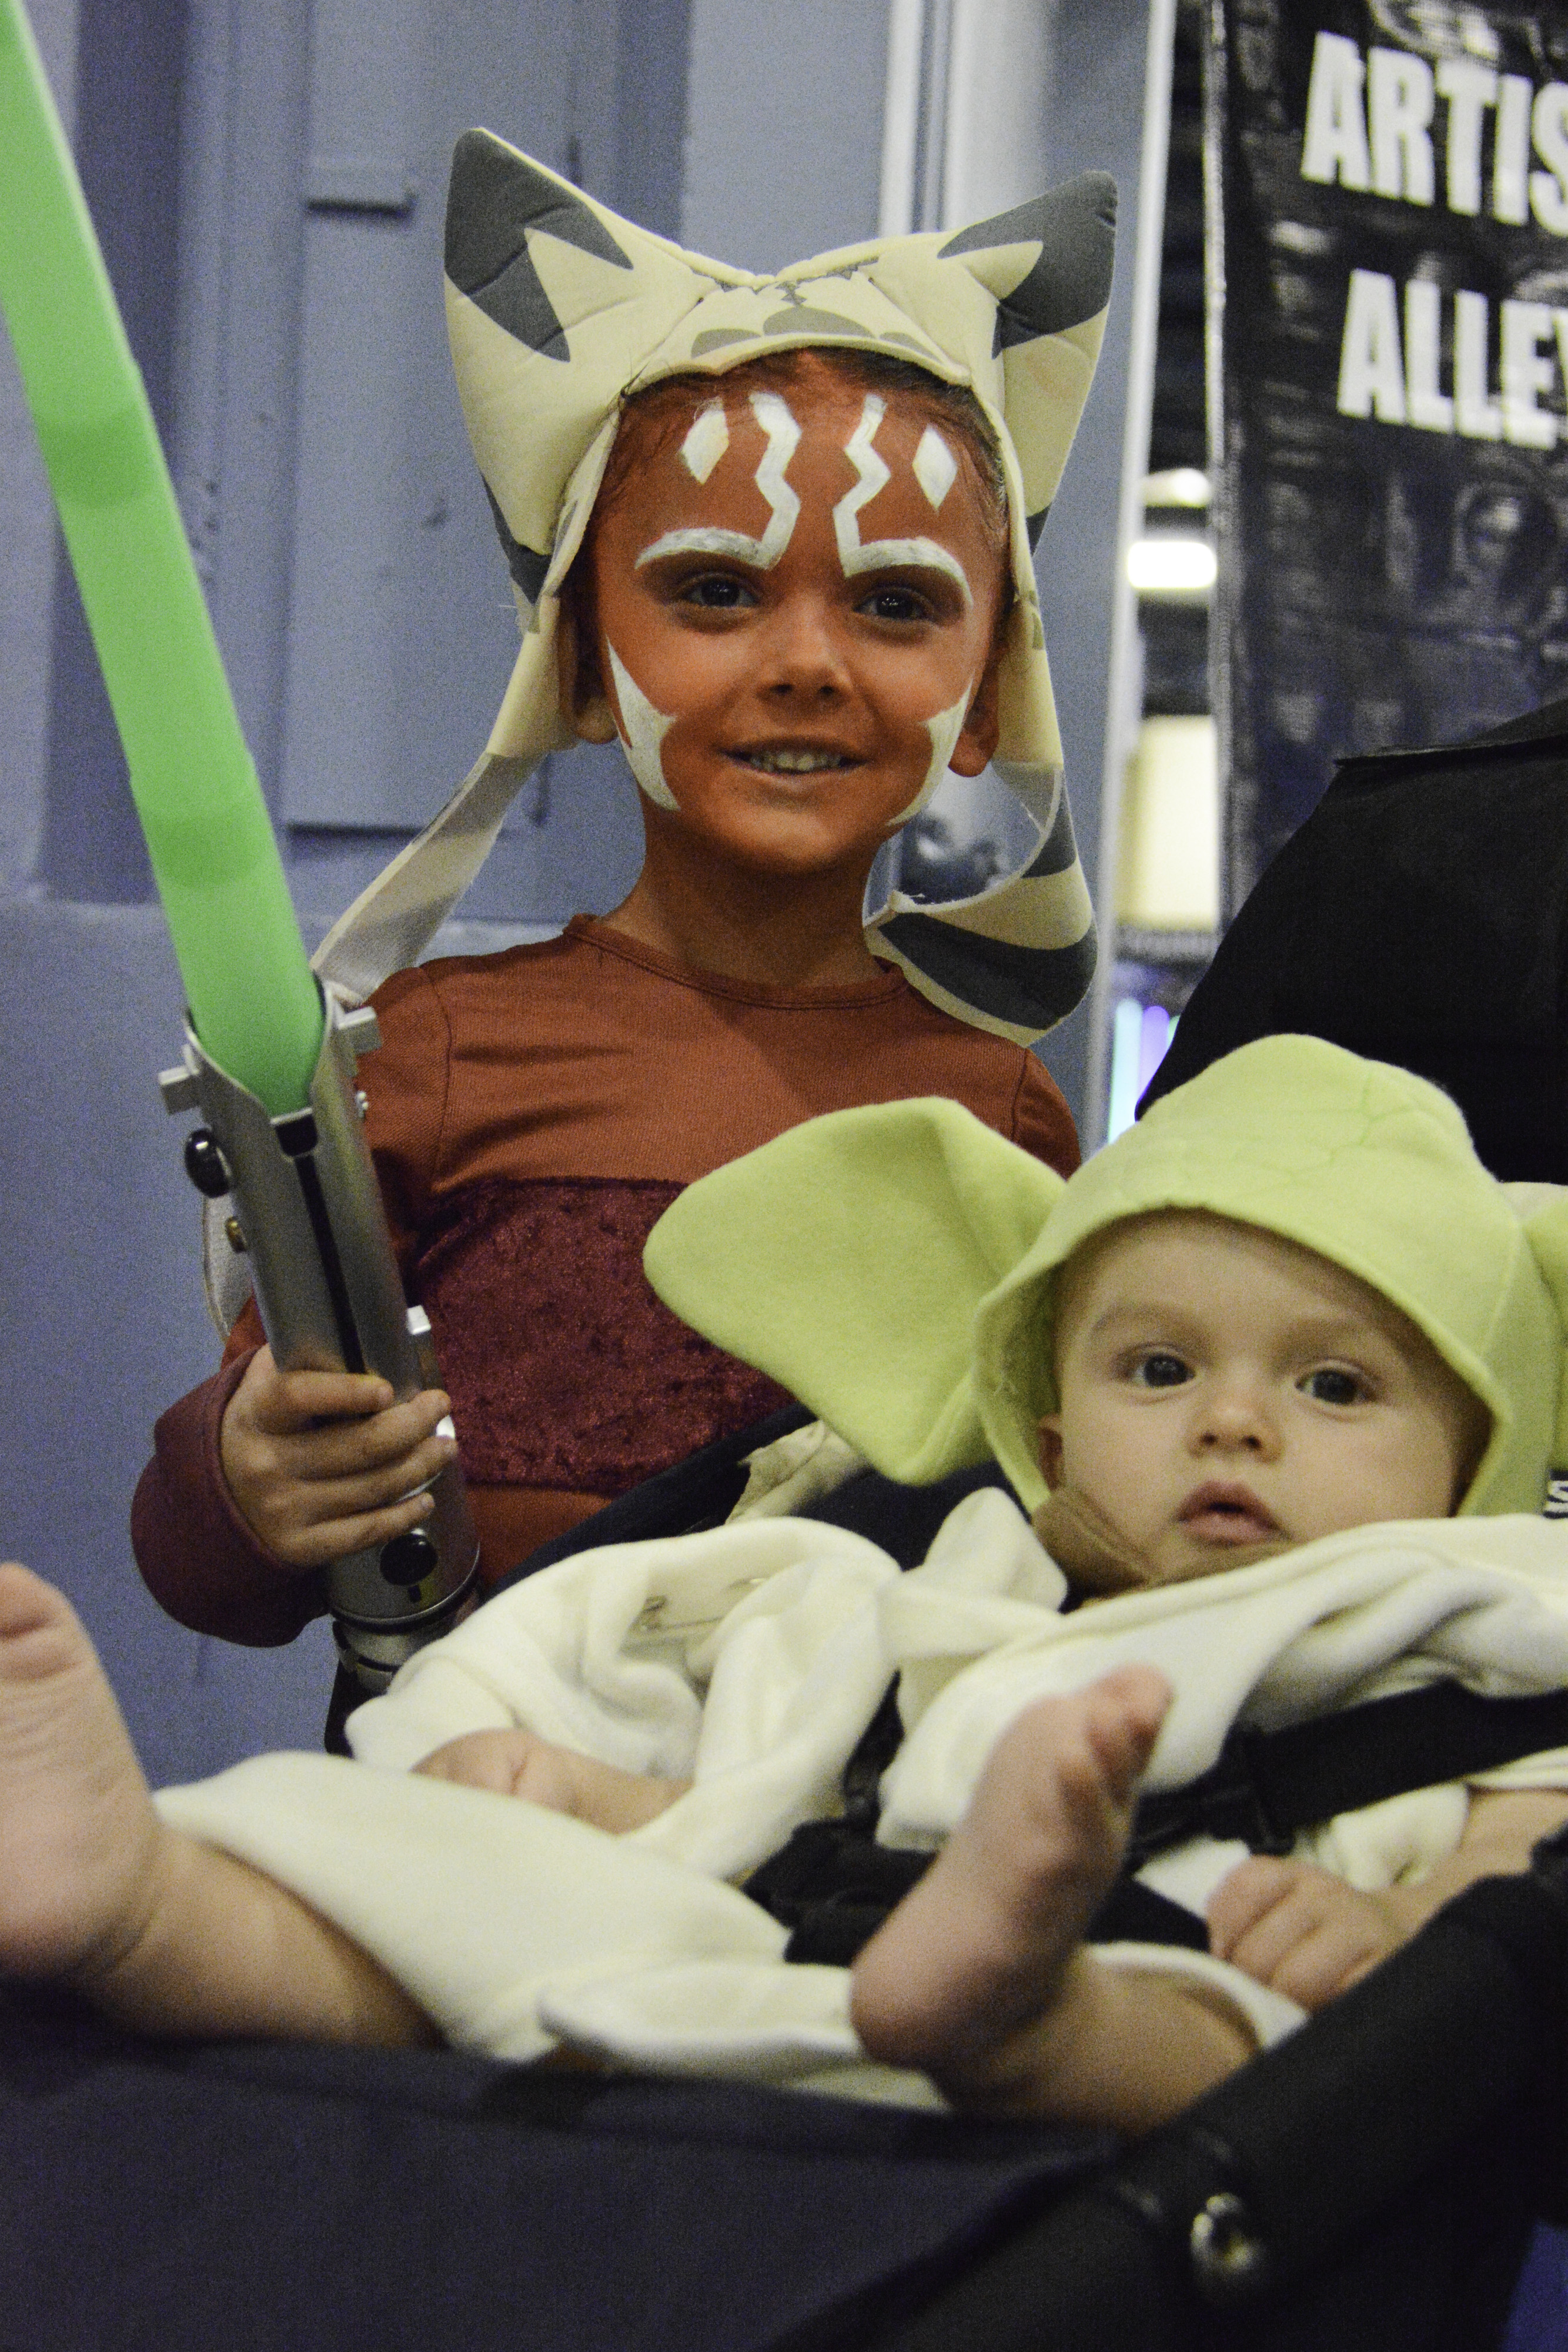 Two children dressed as Ahsoka Tano and Yoda from Start Wars.